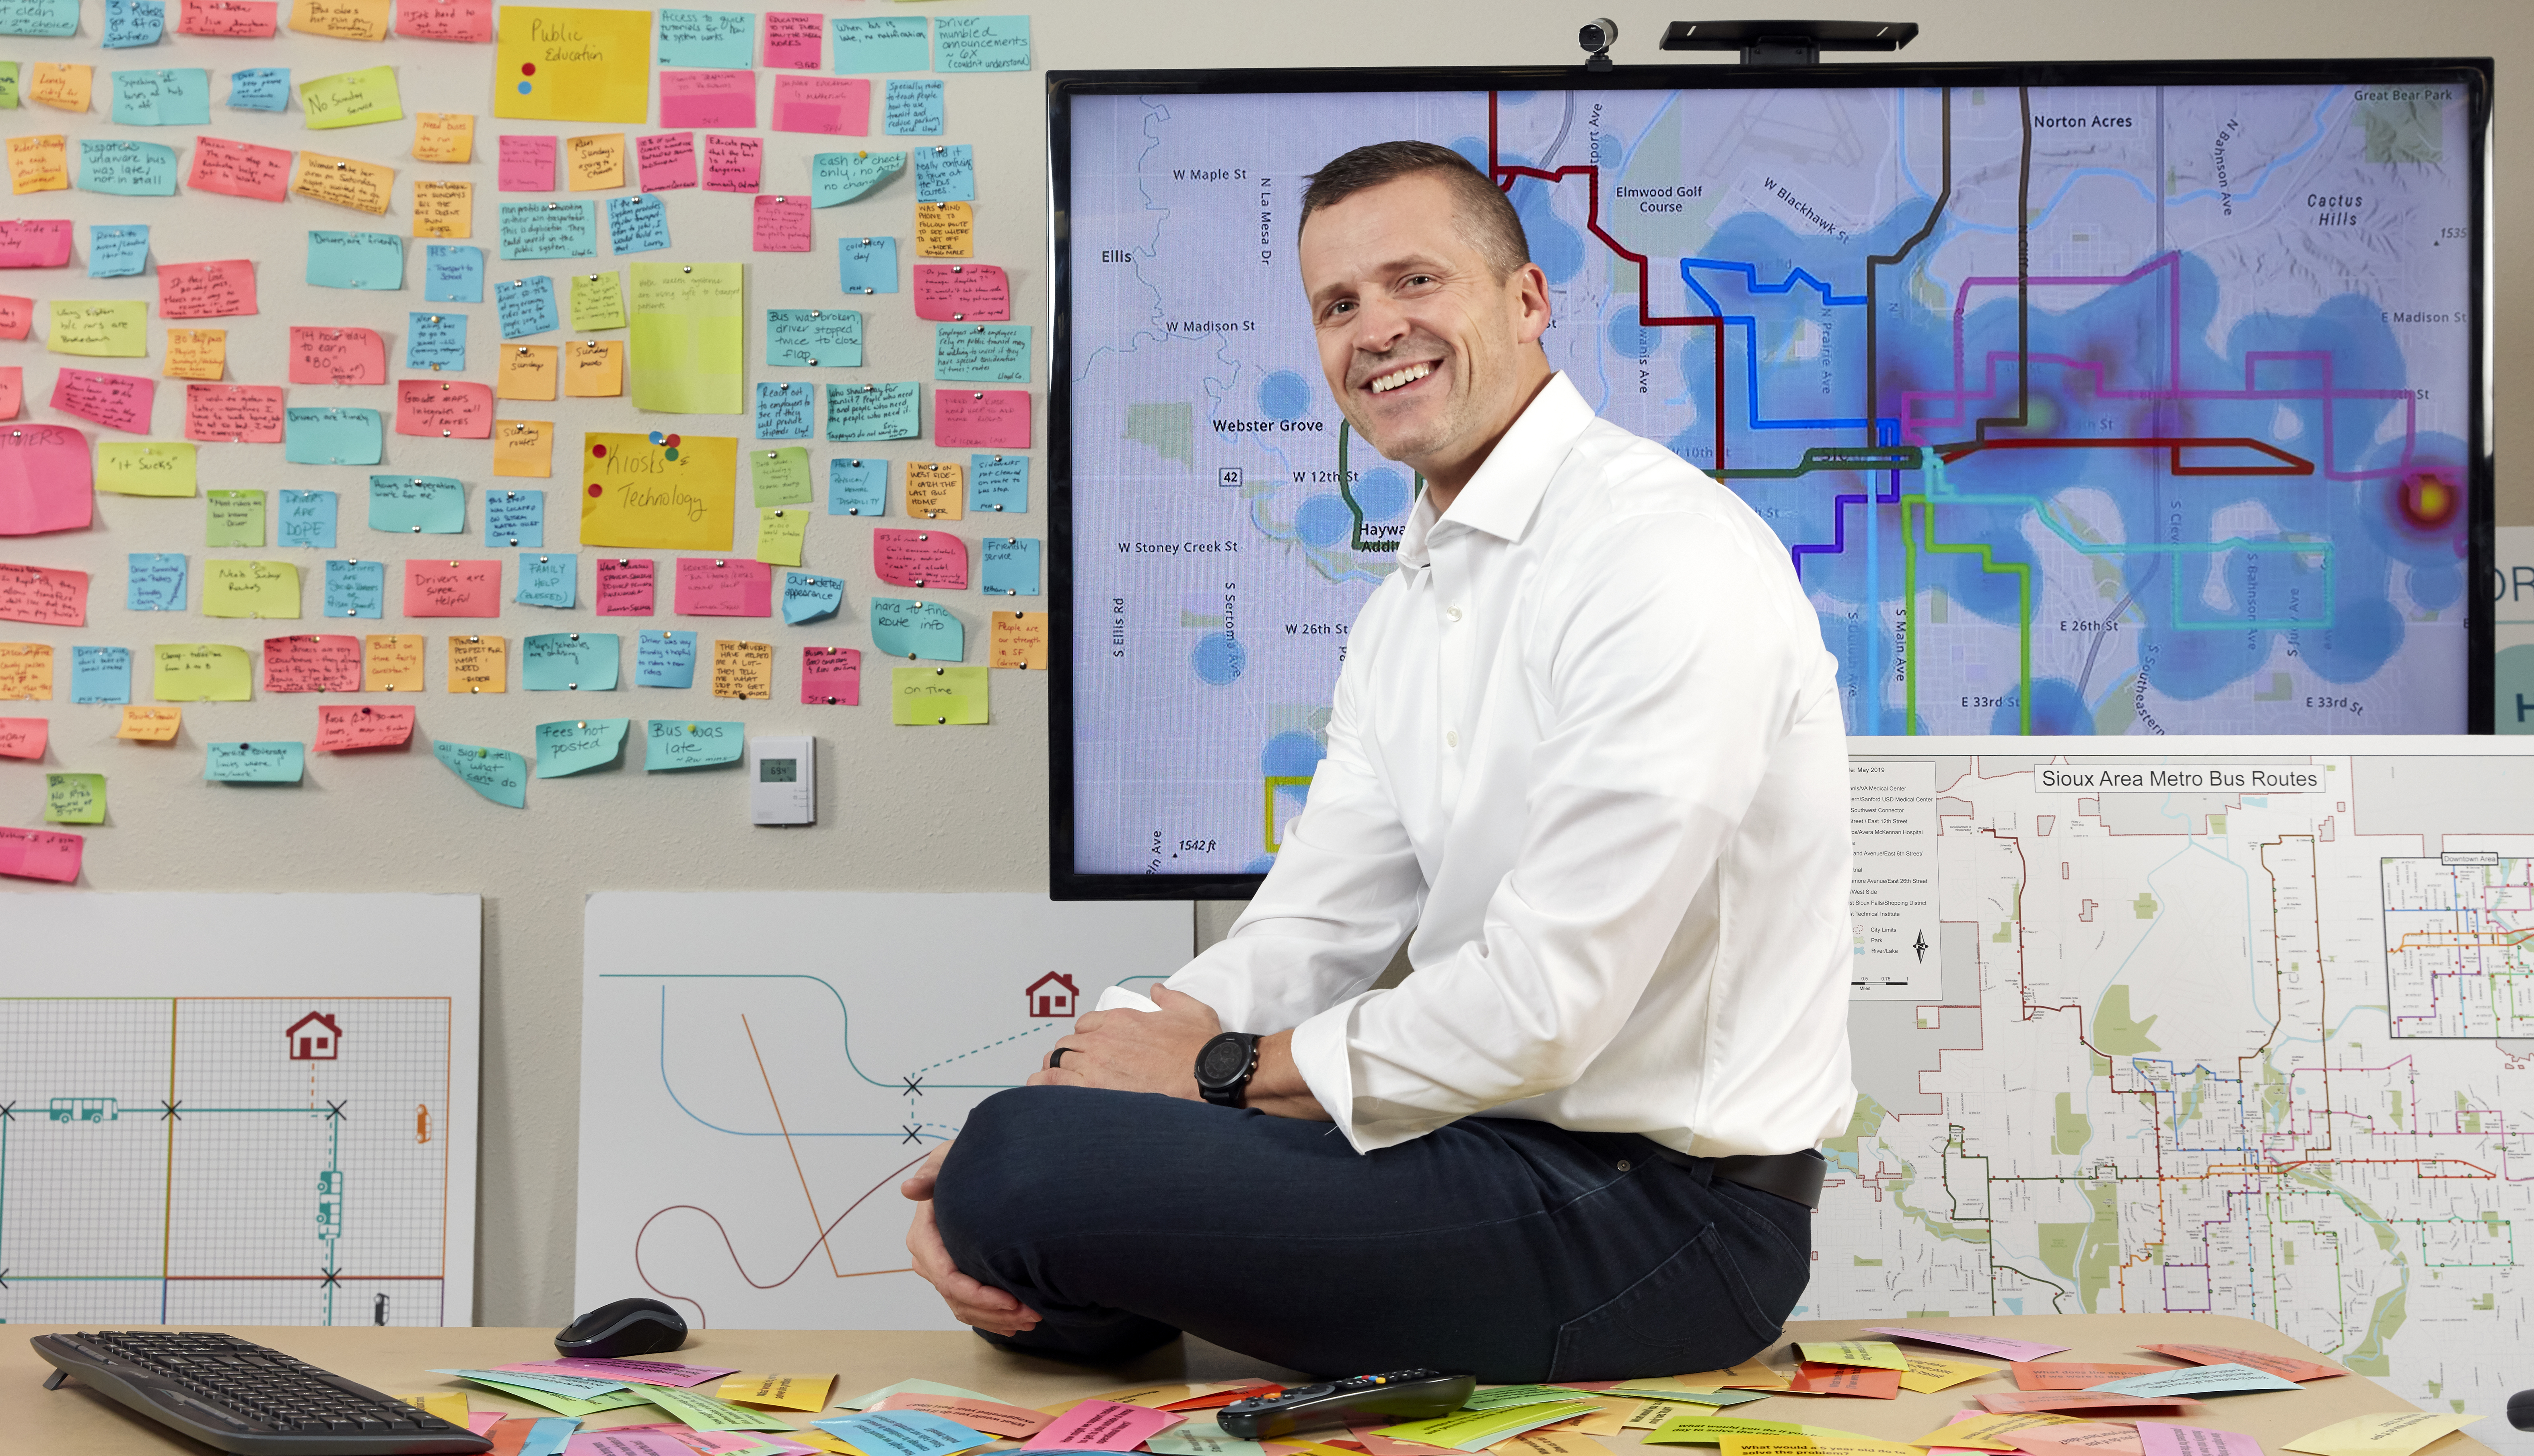 paul tenhaken the mayor of sioux falls south dakota sits on the desk in his planning office where the walls are covered in colorful post it notes and maps